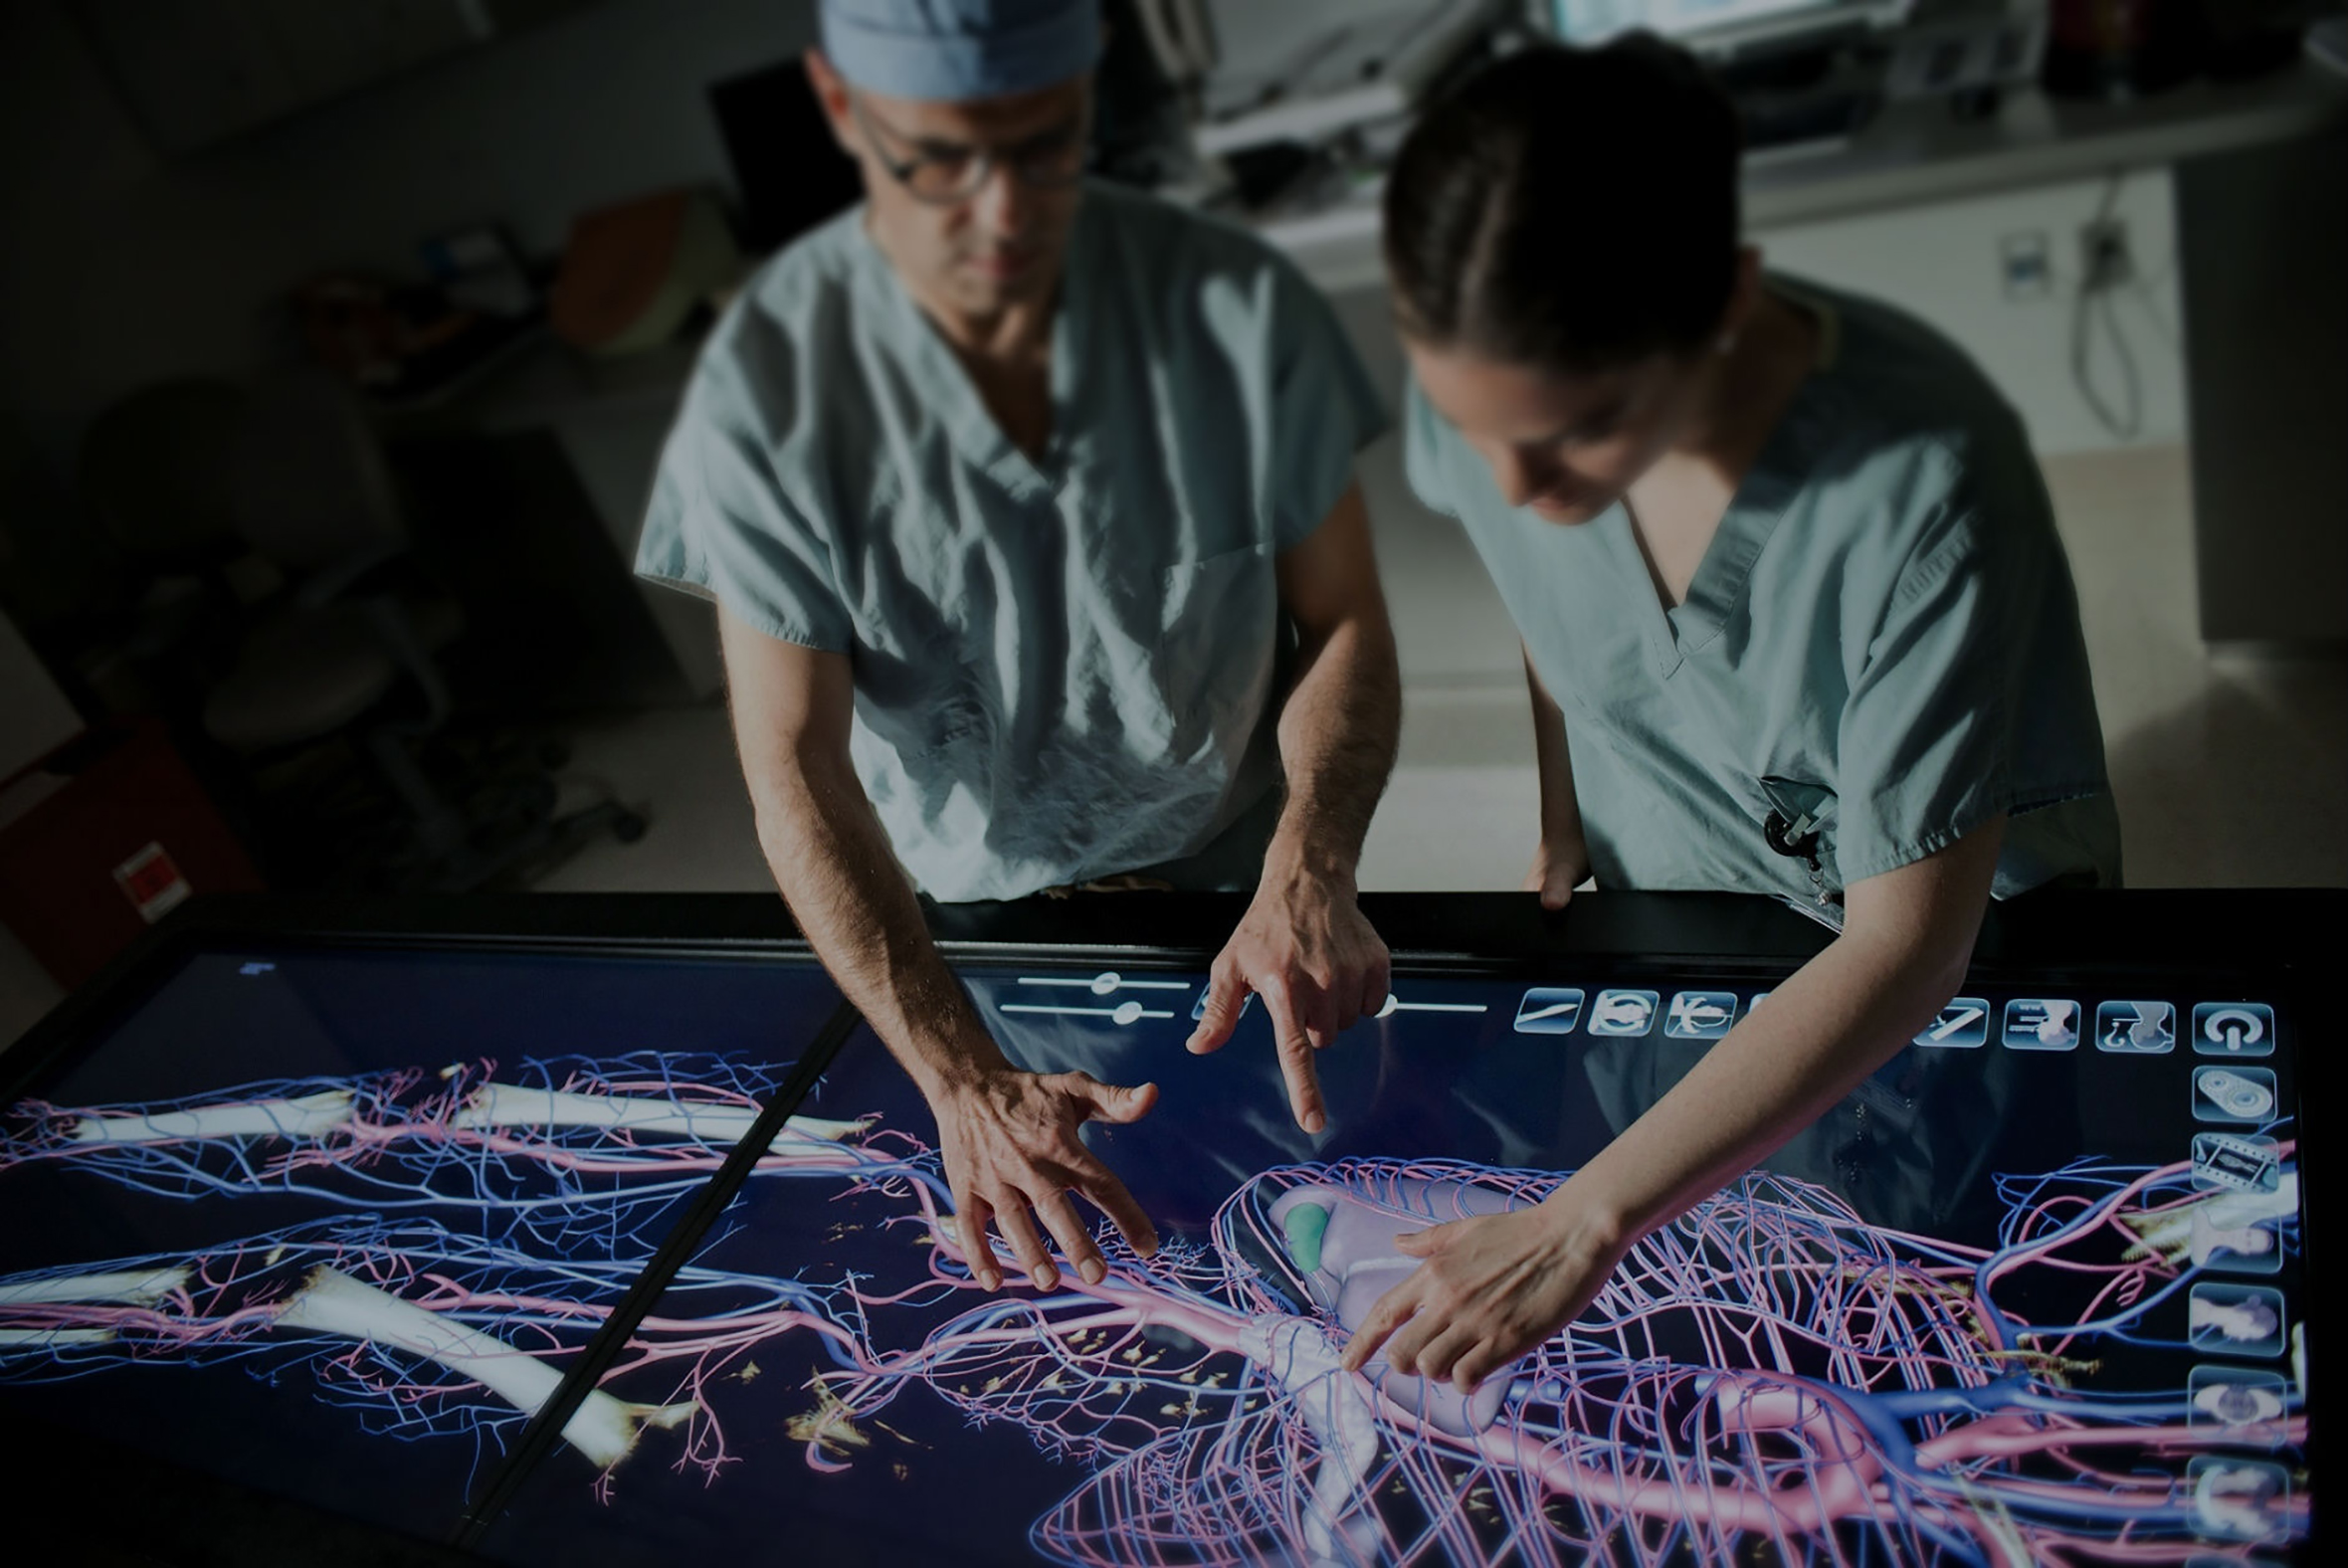 Two people of the medical crew examining the anatomy of human body using the anatomage table through a touchscreen that allows them to zoom in and move the 3D figure of the human body.